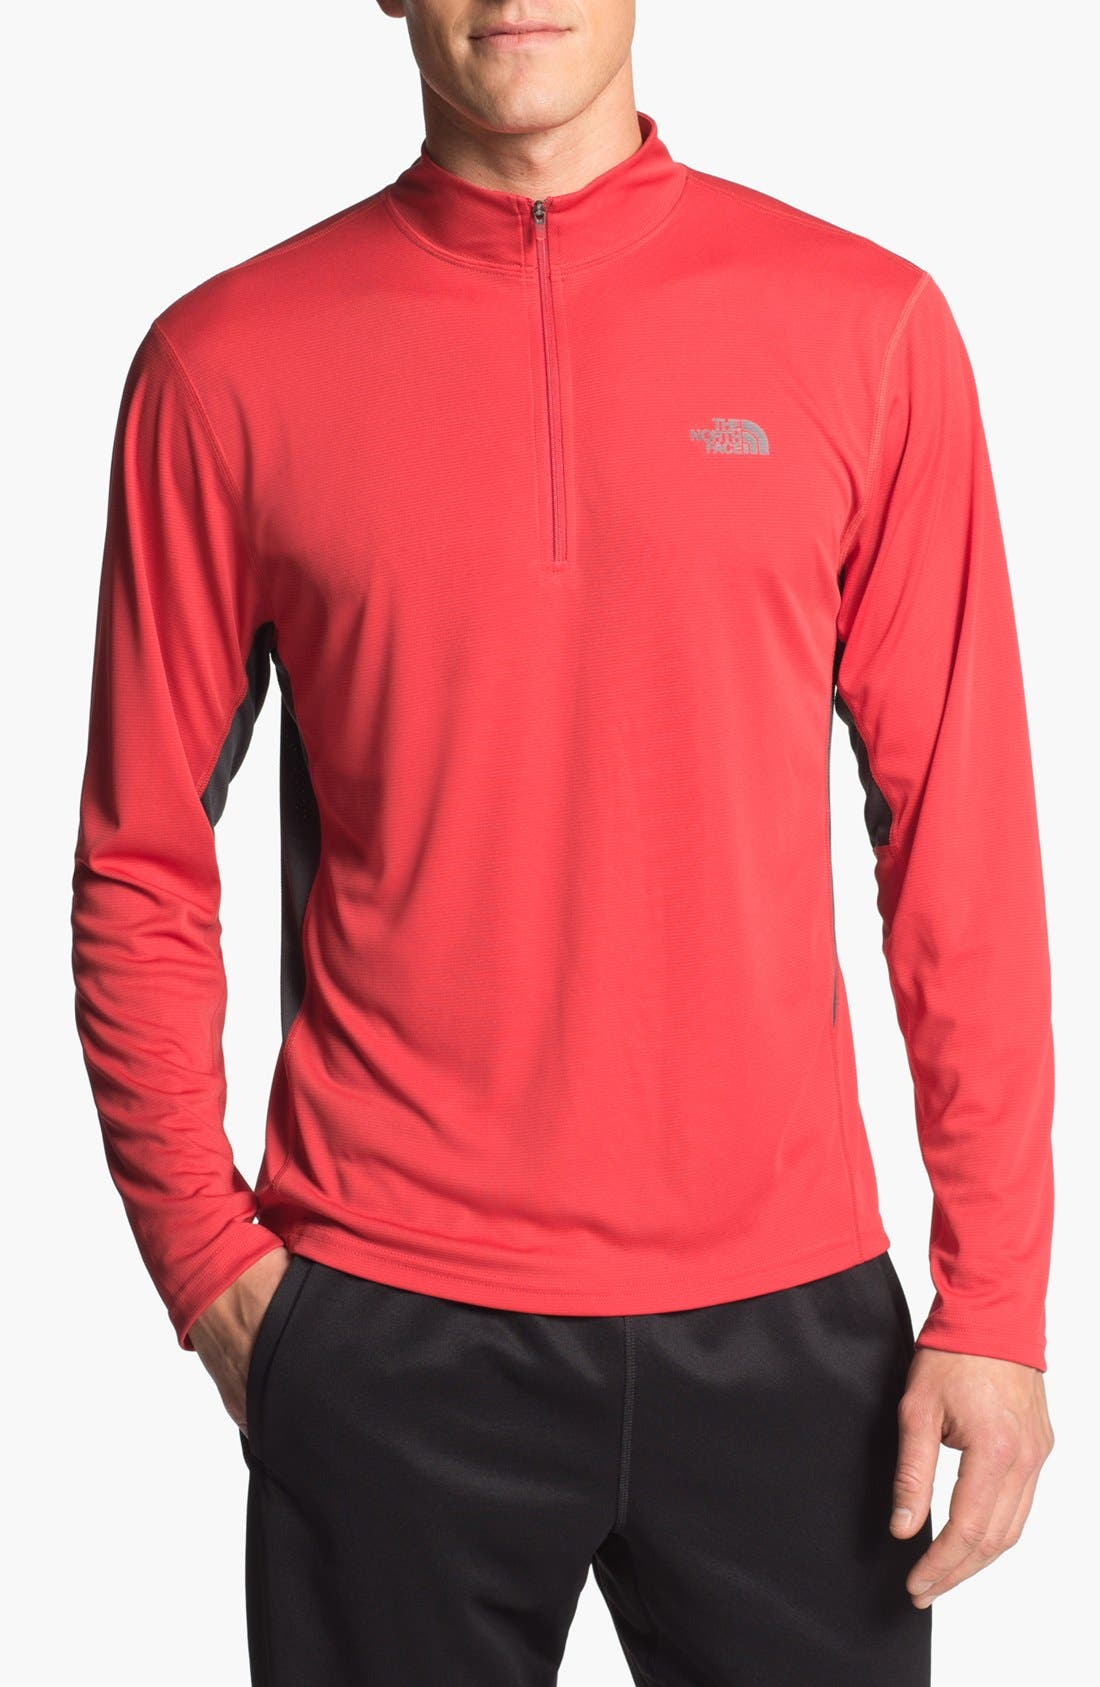 Alternate Image 1 Selected - The North Face 'Flex' Quarter Zip Pullover